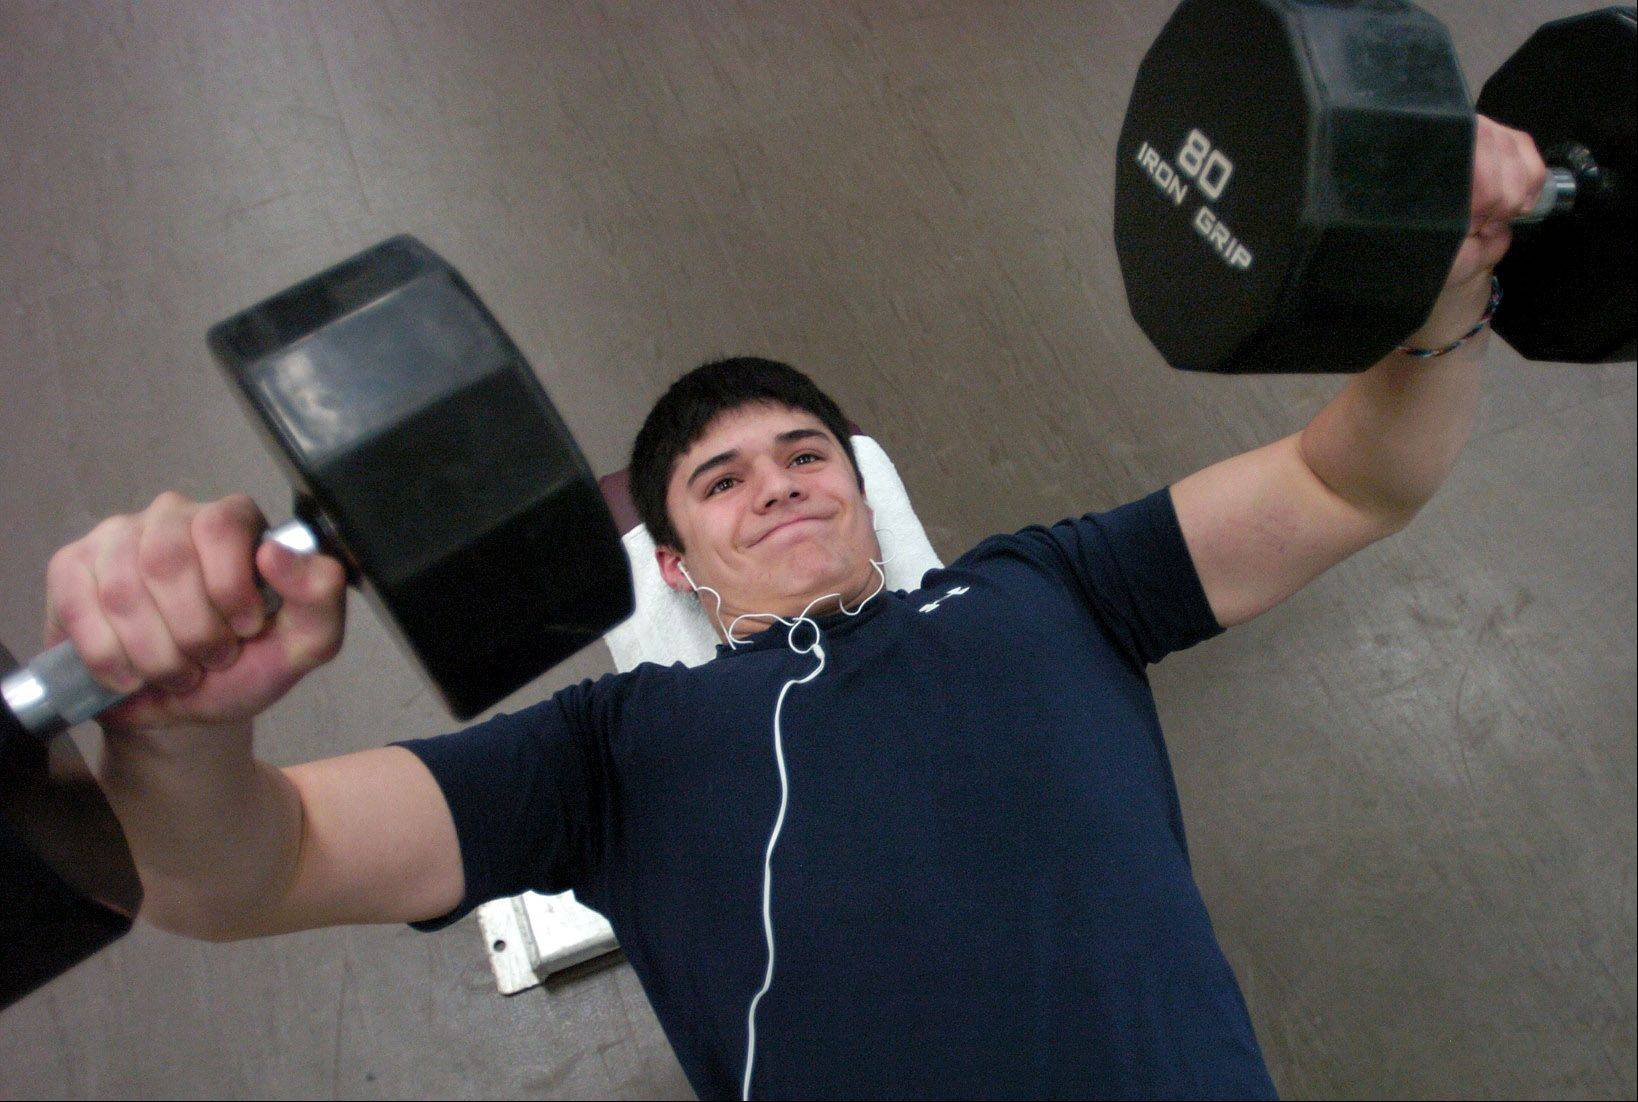 Conant junior Troy Piccinini, 16, continues to workout, despite having had three concussions, and fully intends to play football in the fall.